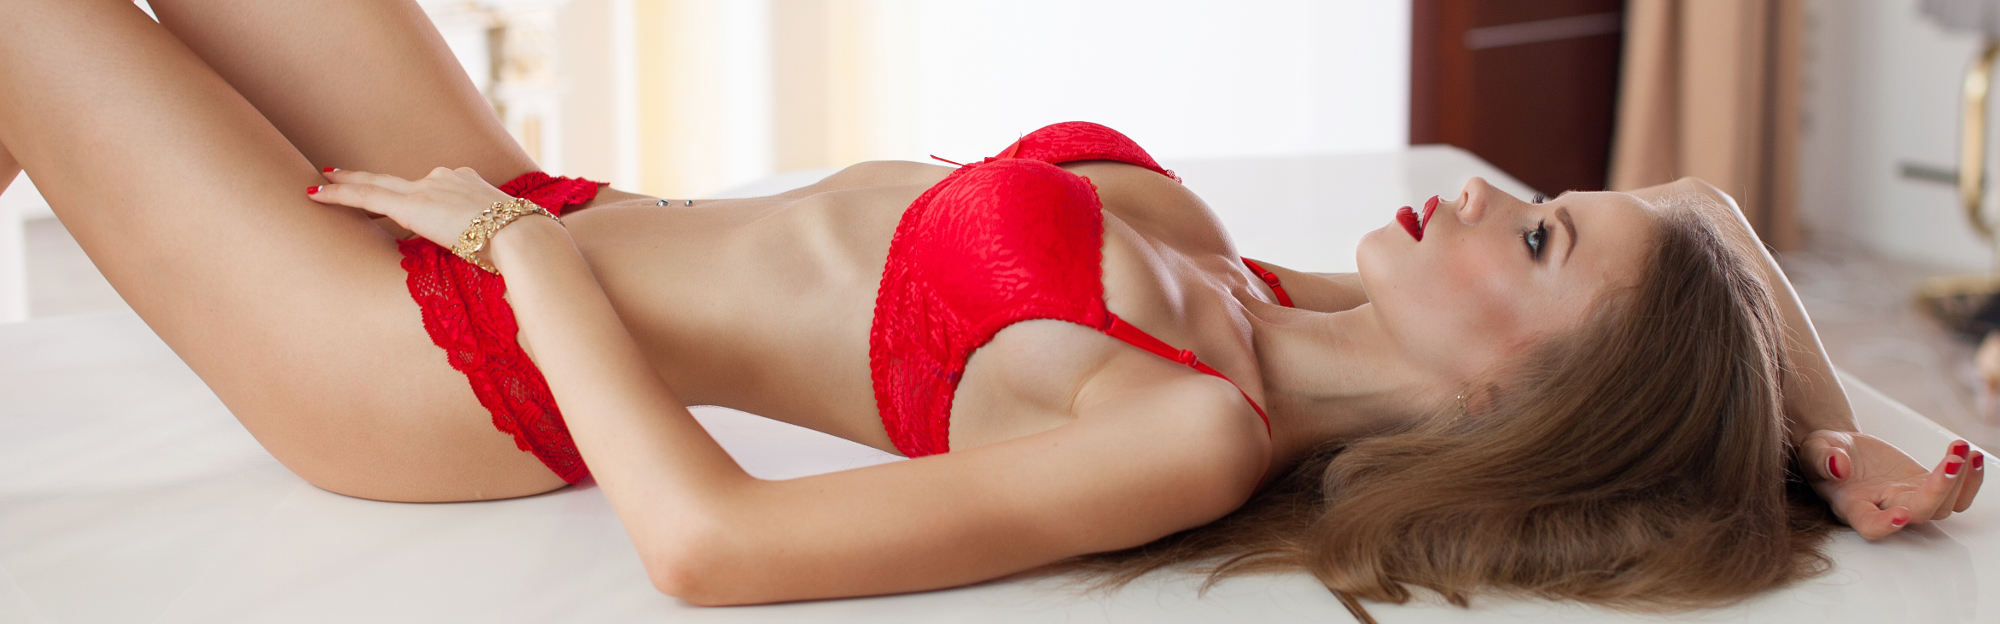 Find Melbourne Escorts Right Here